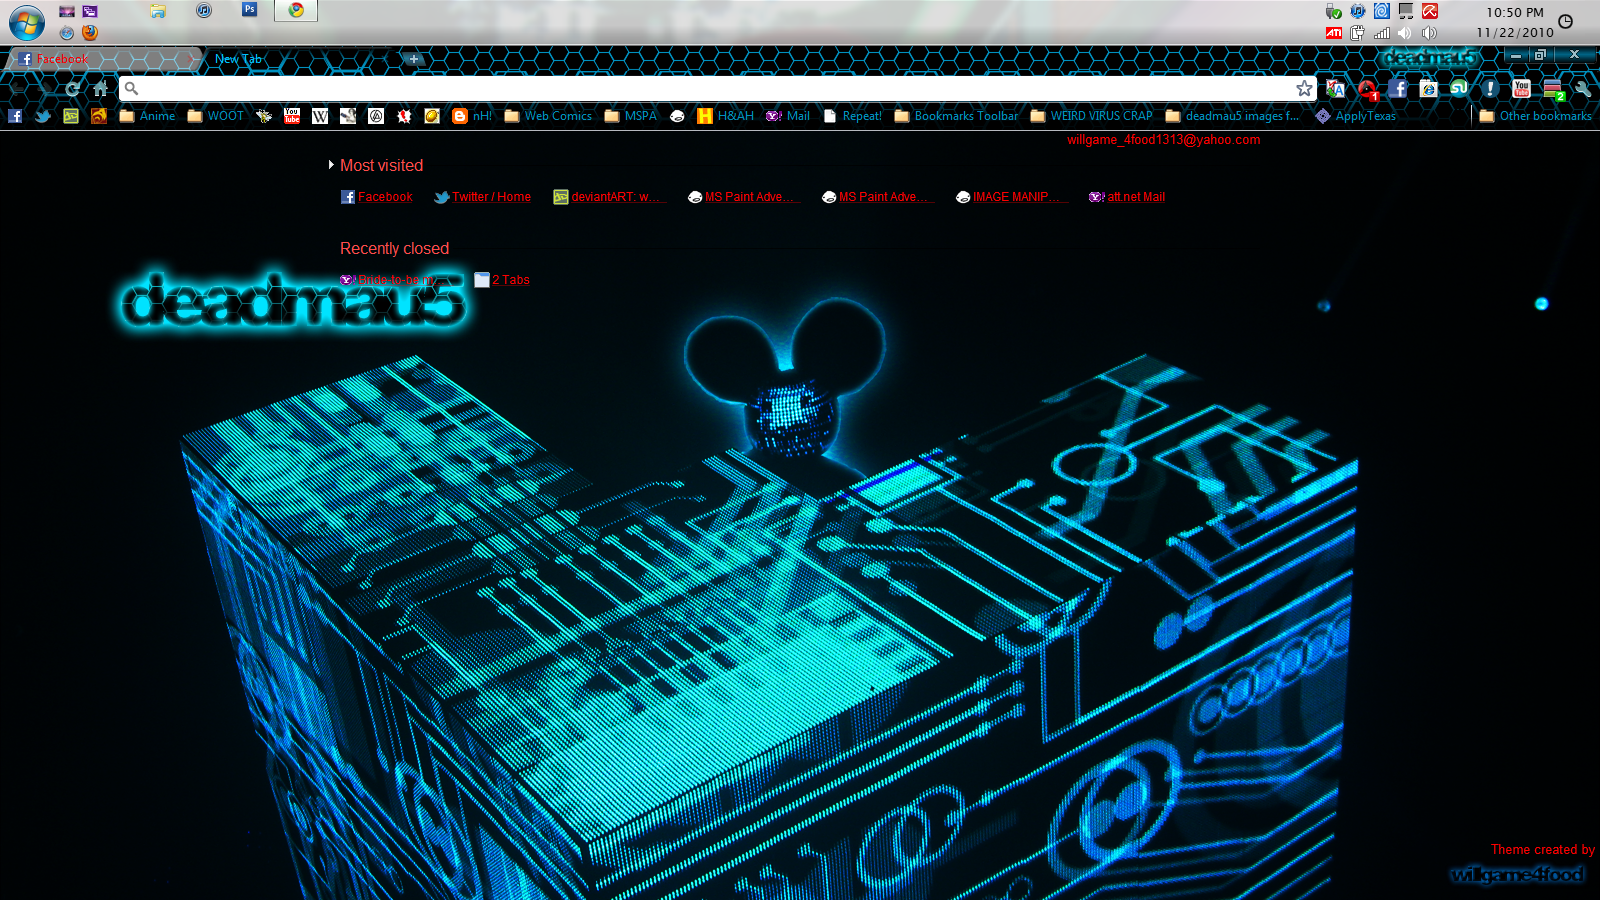 Deadmau5 Chrome Theme 1600 by willgame4food